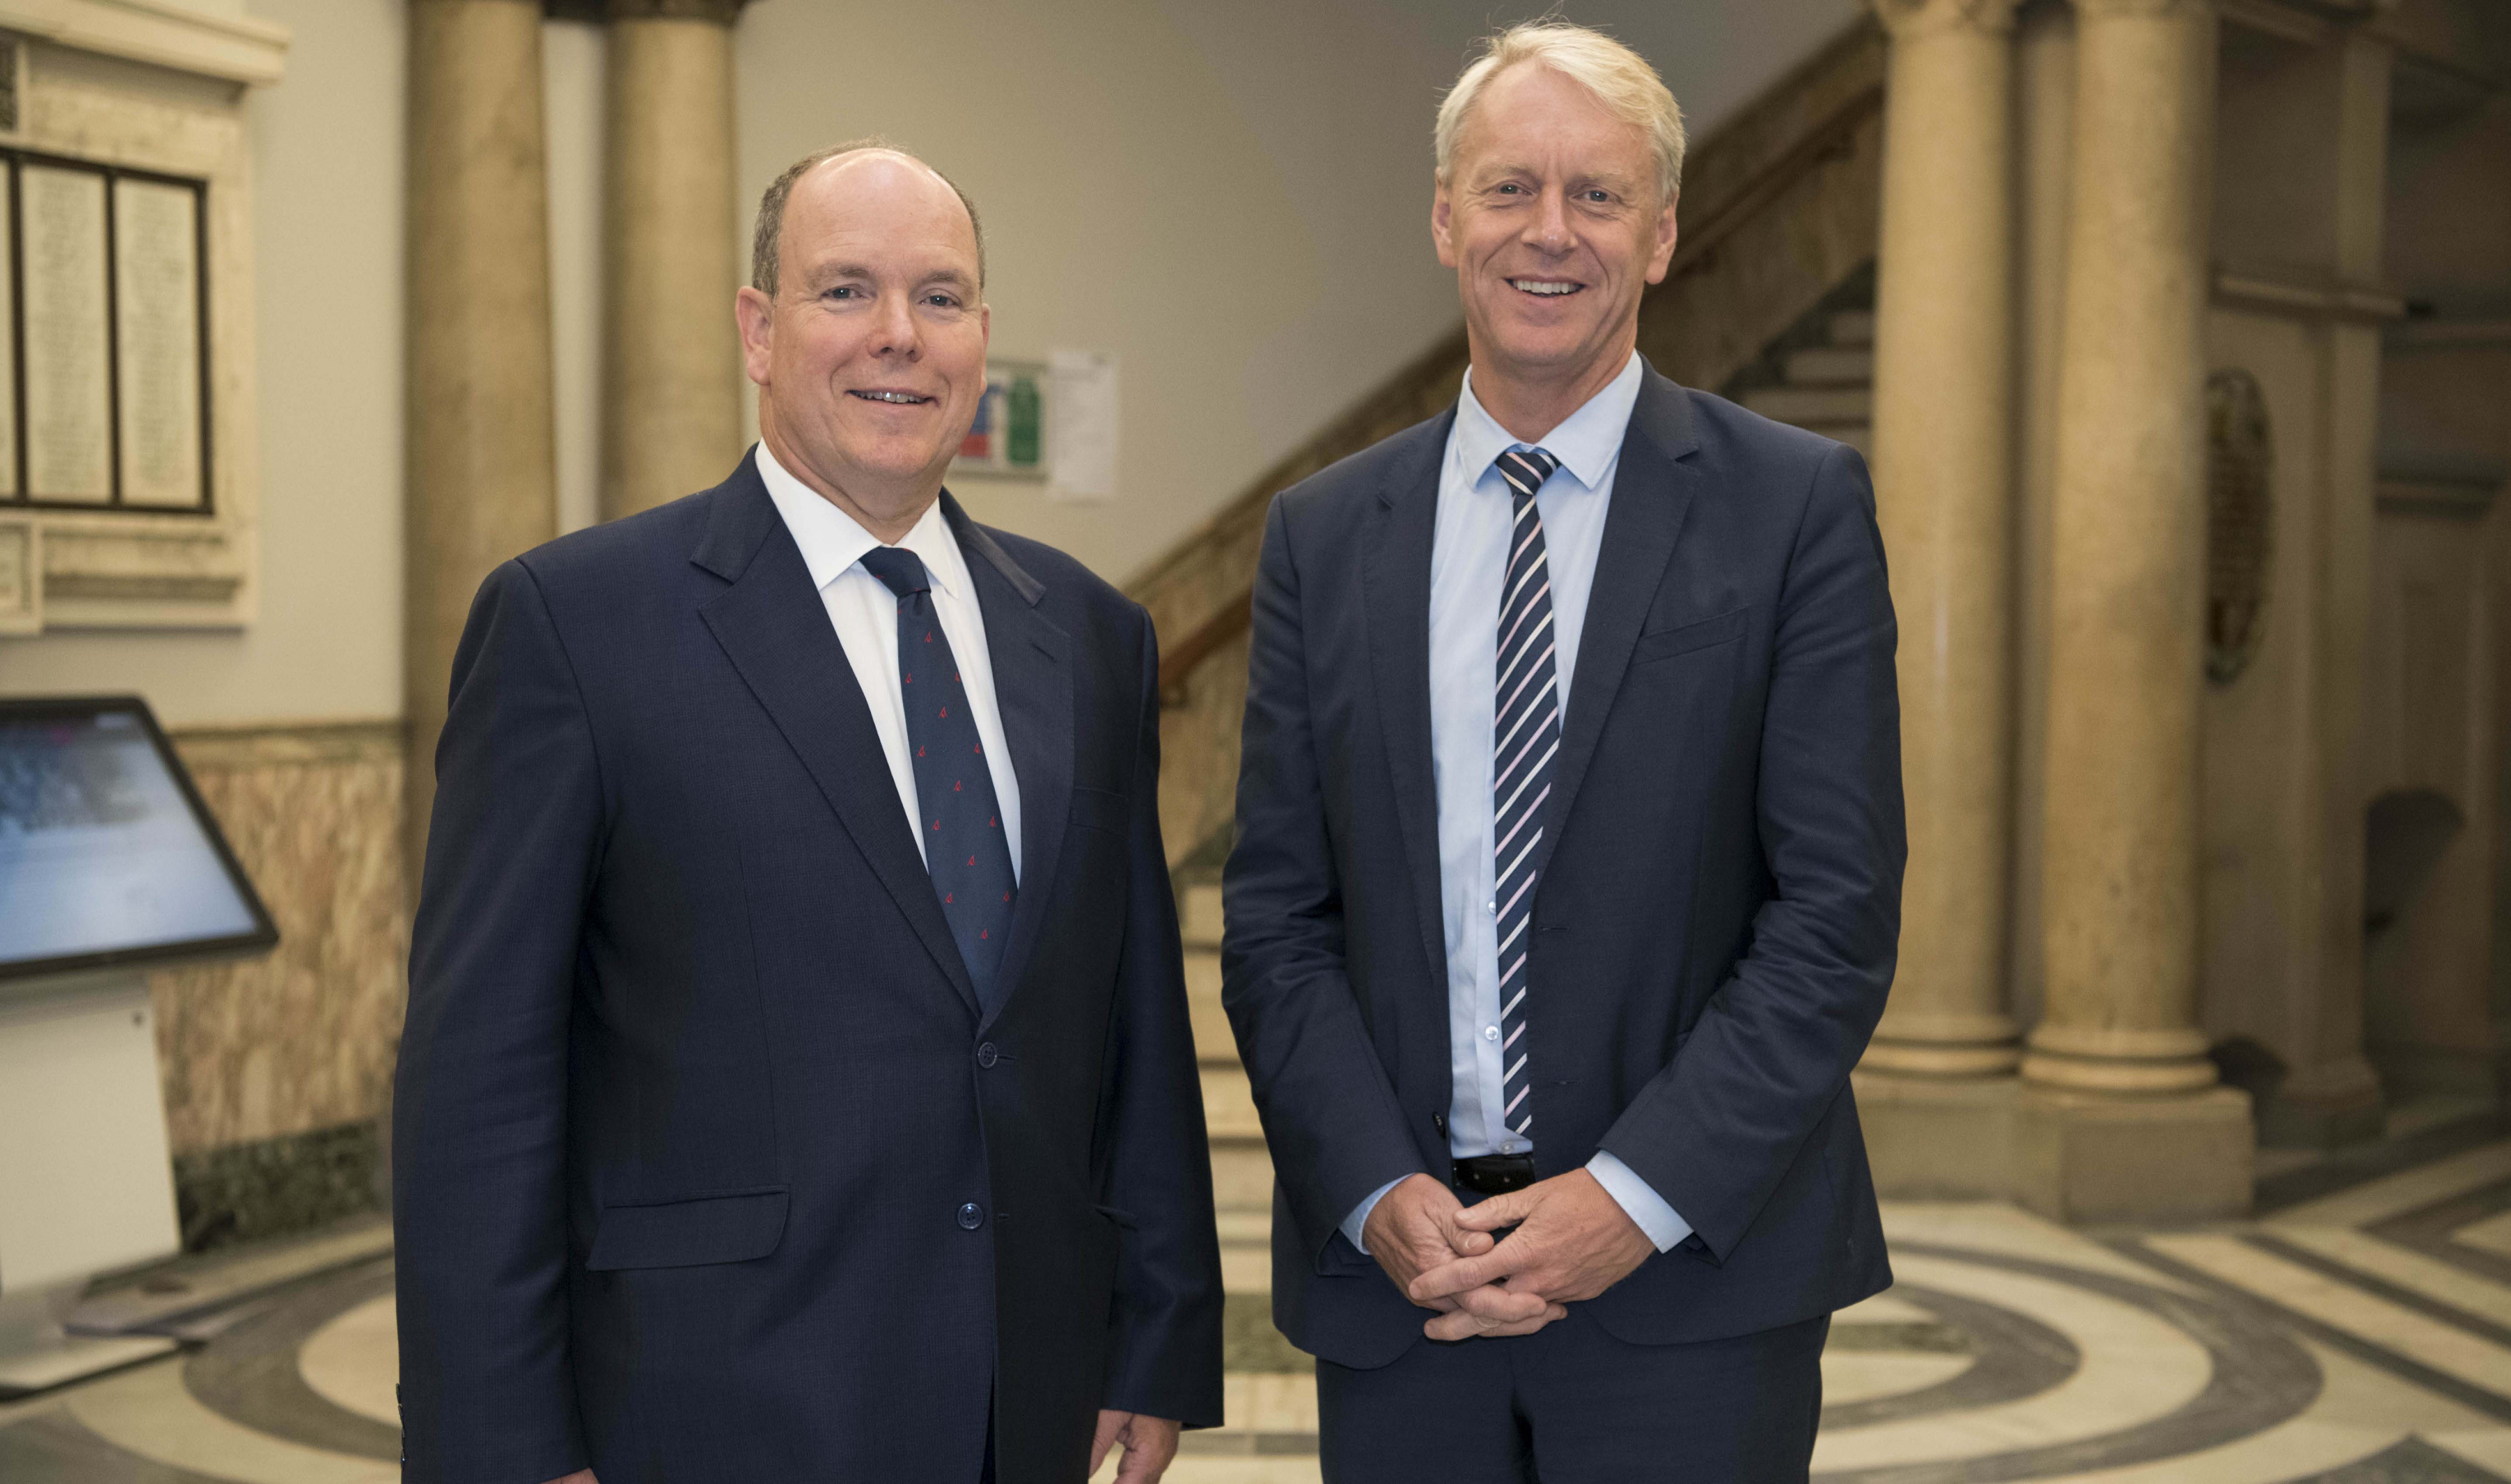 His Serene Highness Prince Albert II of Monaco with Newcastle University Vice-Chancellor and President, Professor Chris Day standard